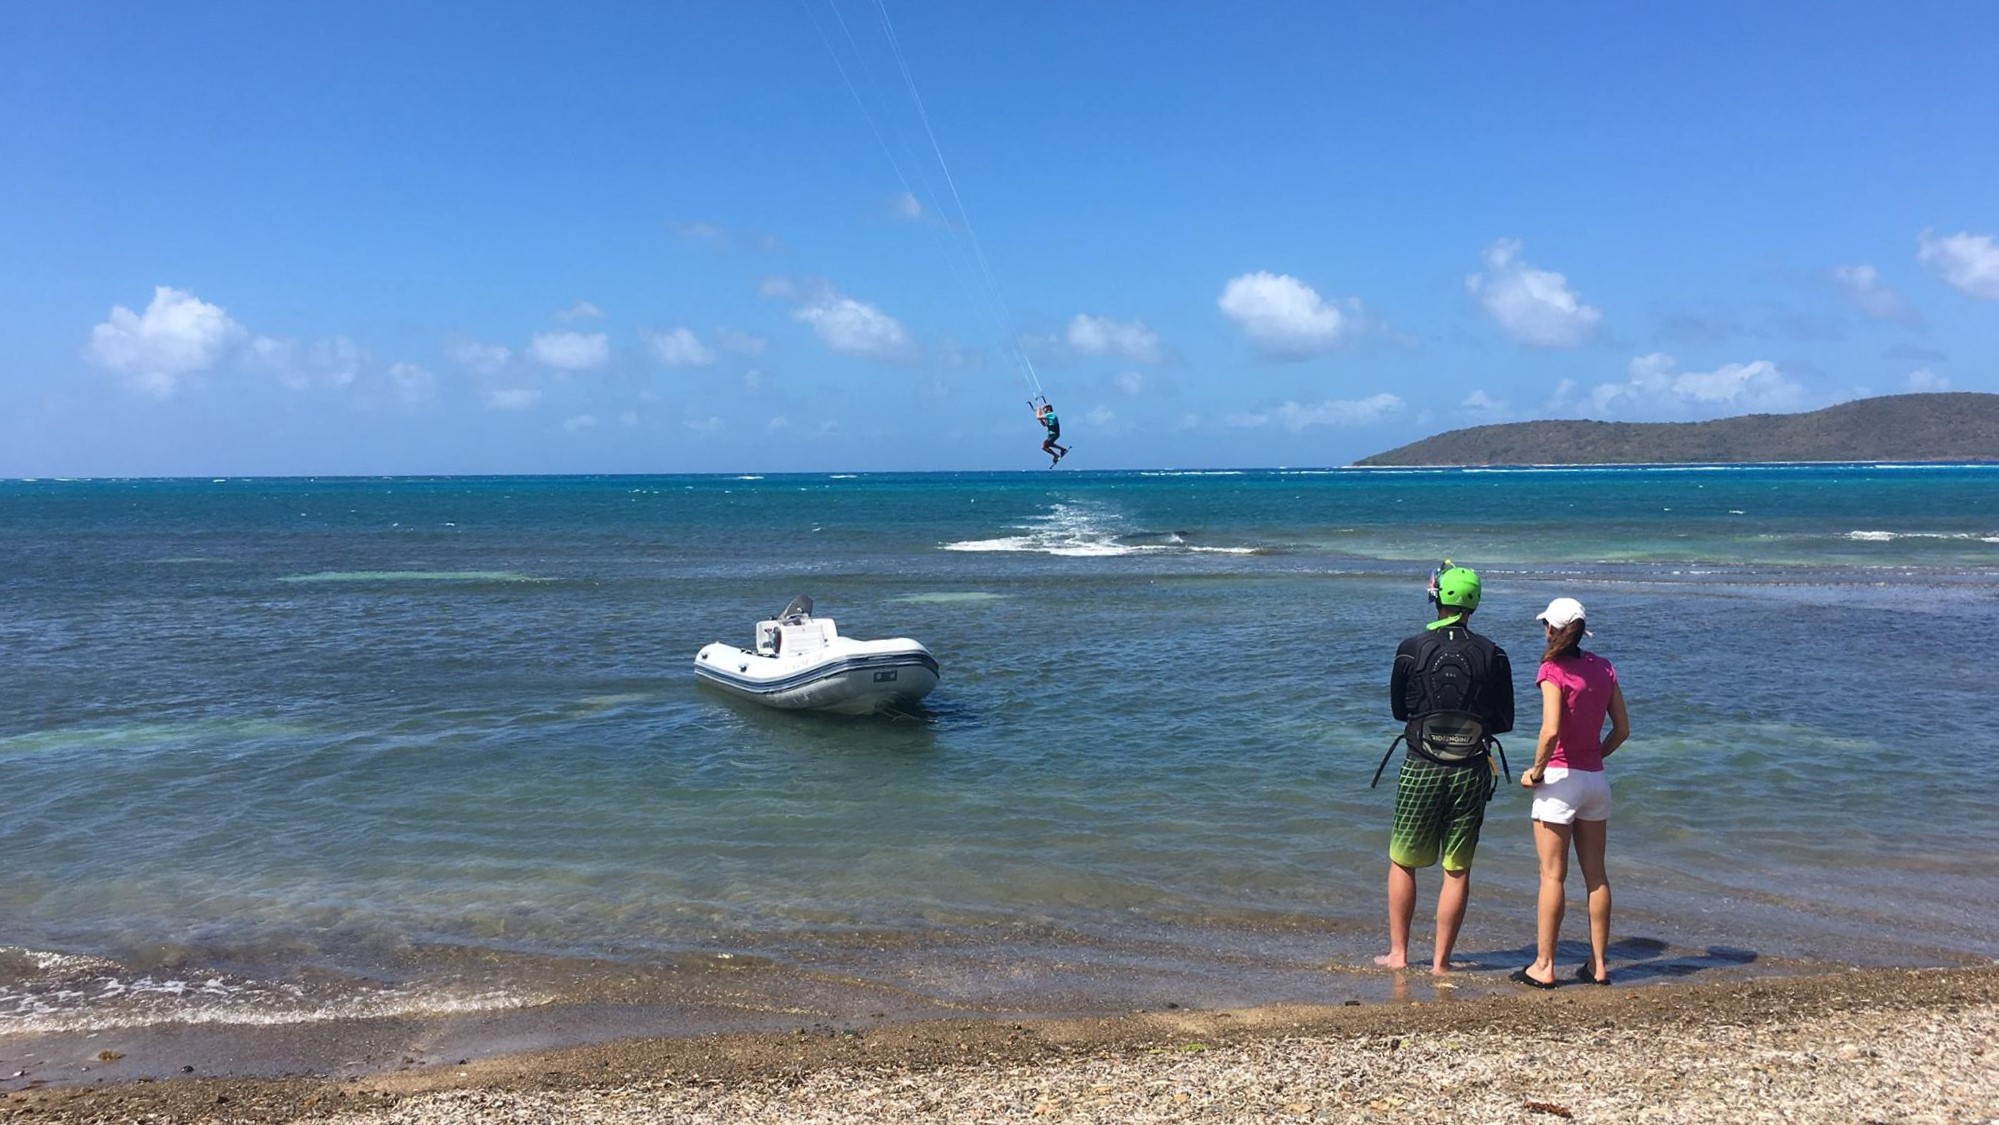 Kitesurf instruction in the Virign Islands